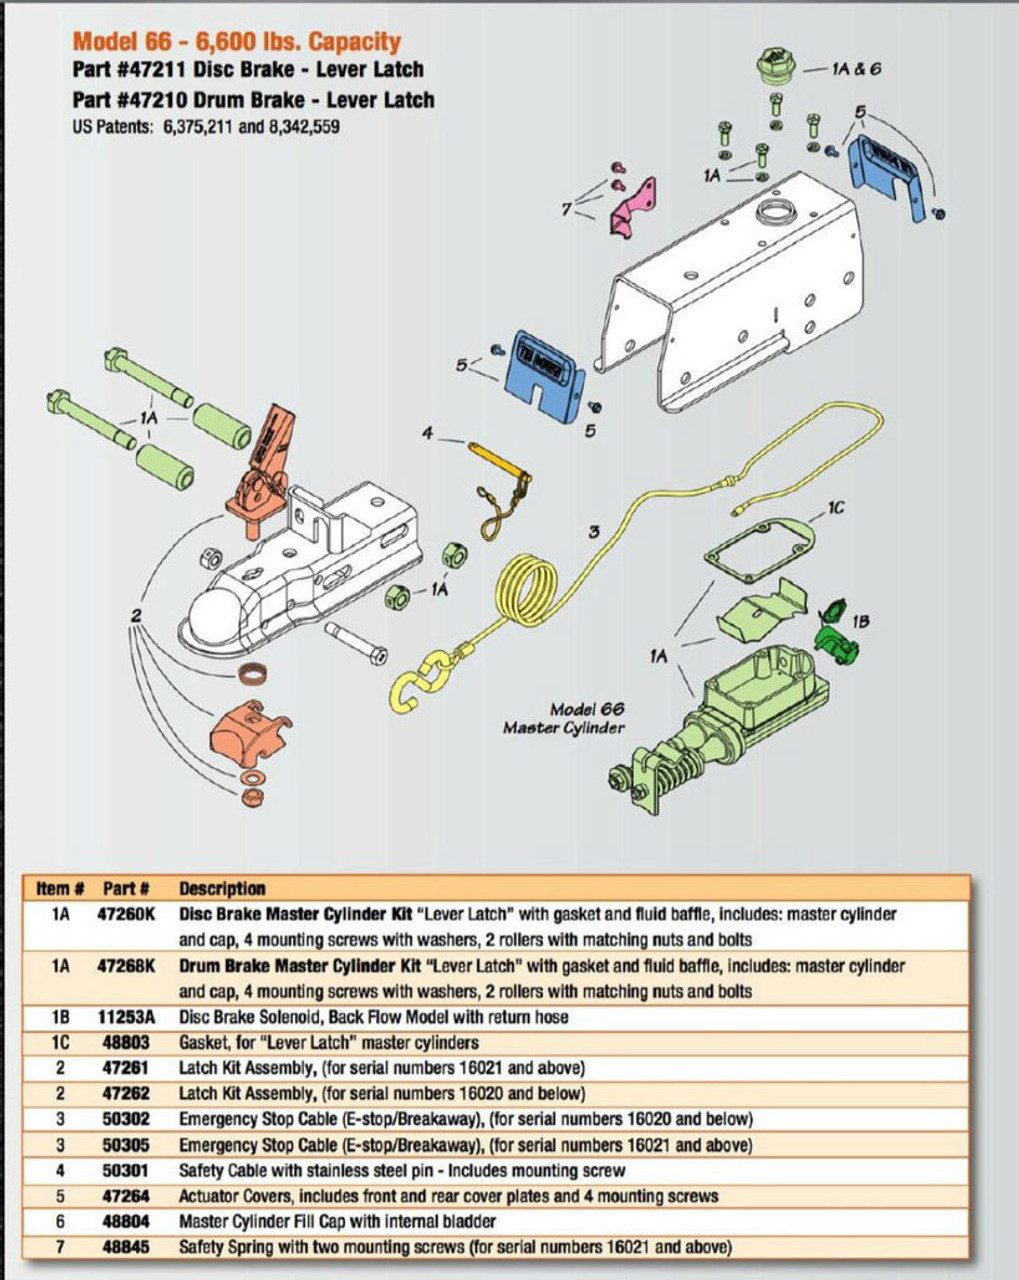 Tie Down Actuator Wiring Diagram Trusted 12 Volt 50302 66 70 80 Breakaway Cable With Button Stop Linear